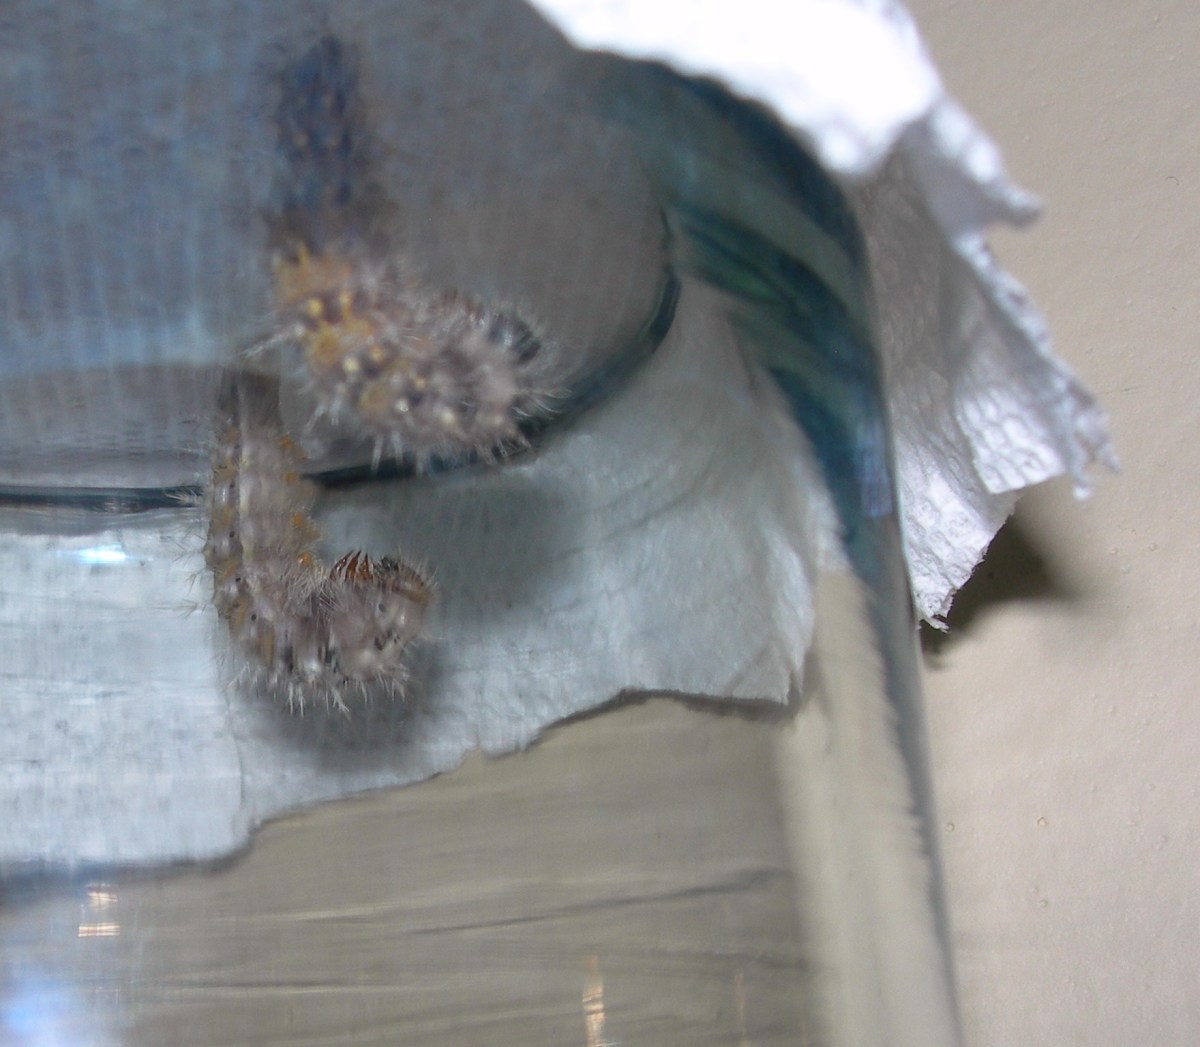 These prepupa caterpillars look like they are praying